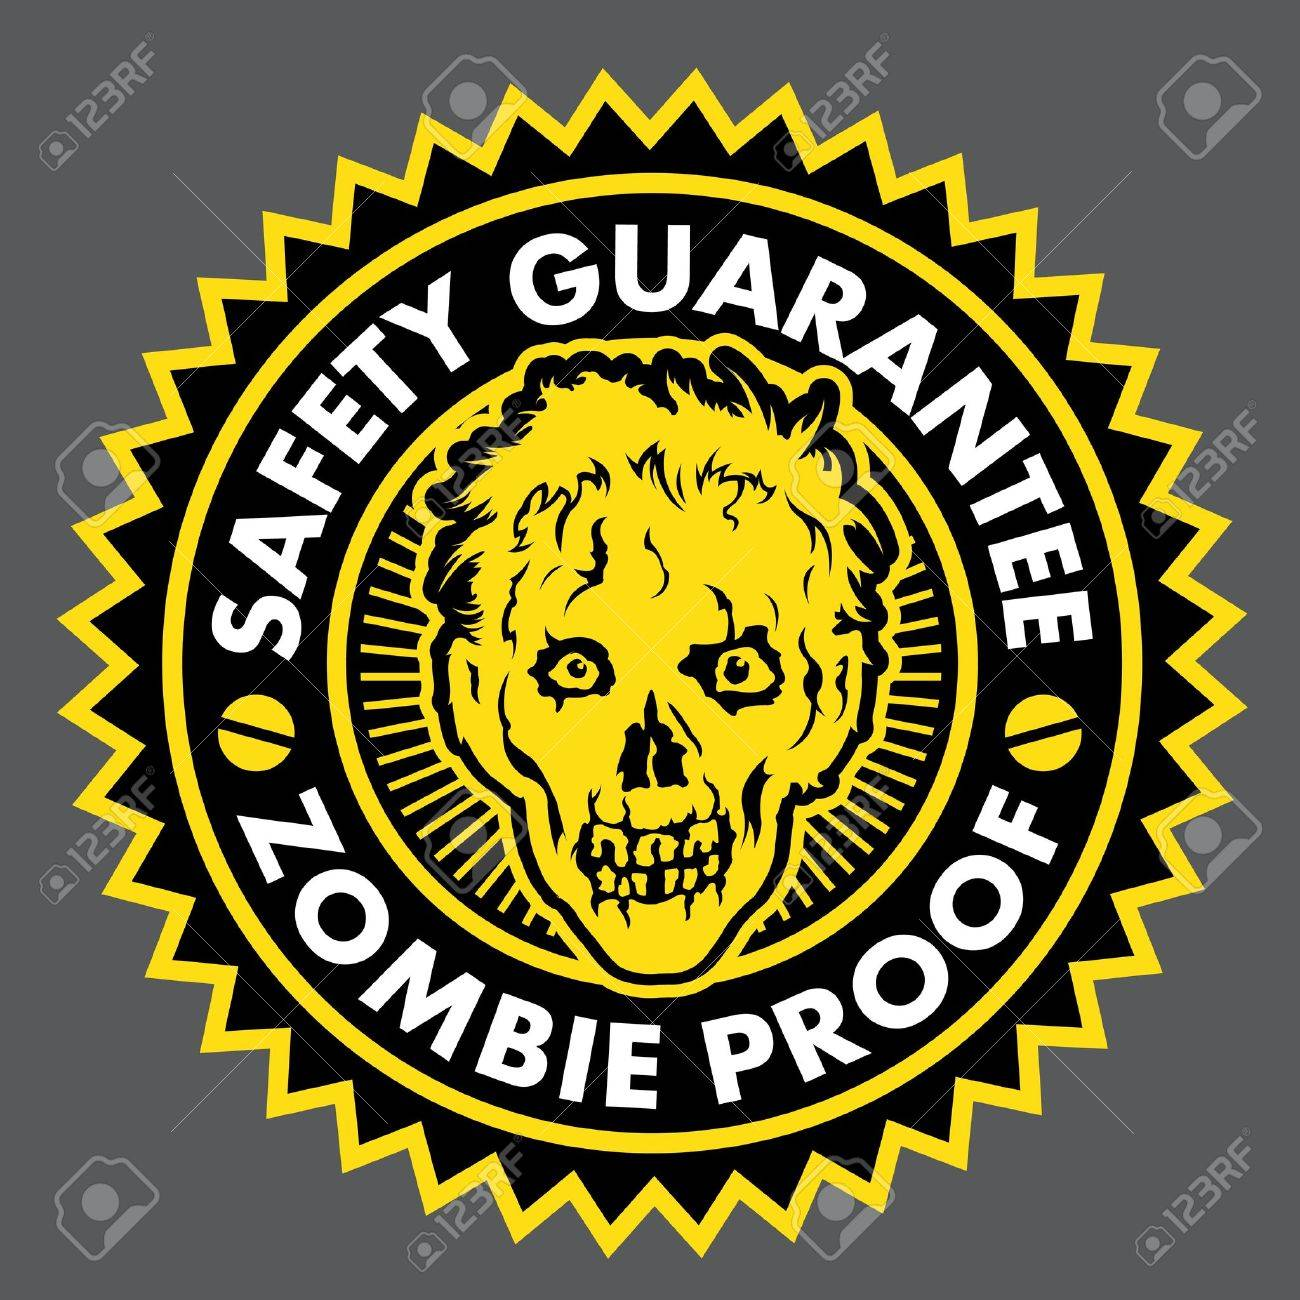 Zombie Proof, Safety Guarantee Seal Stock Vector - 15323782